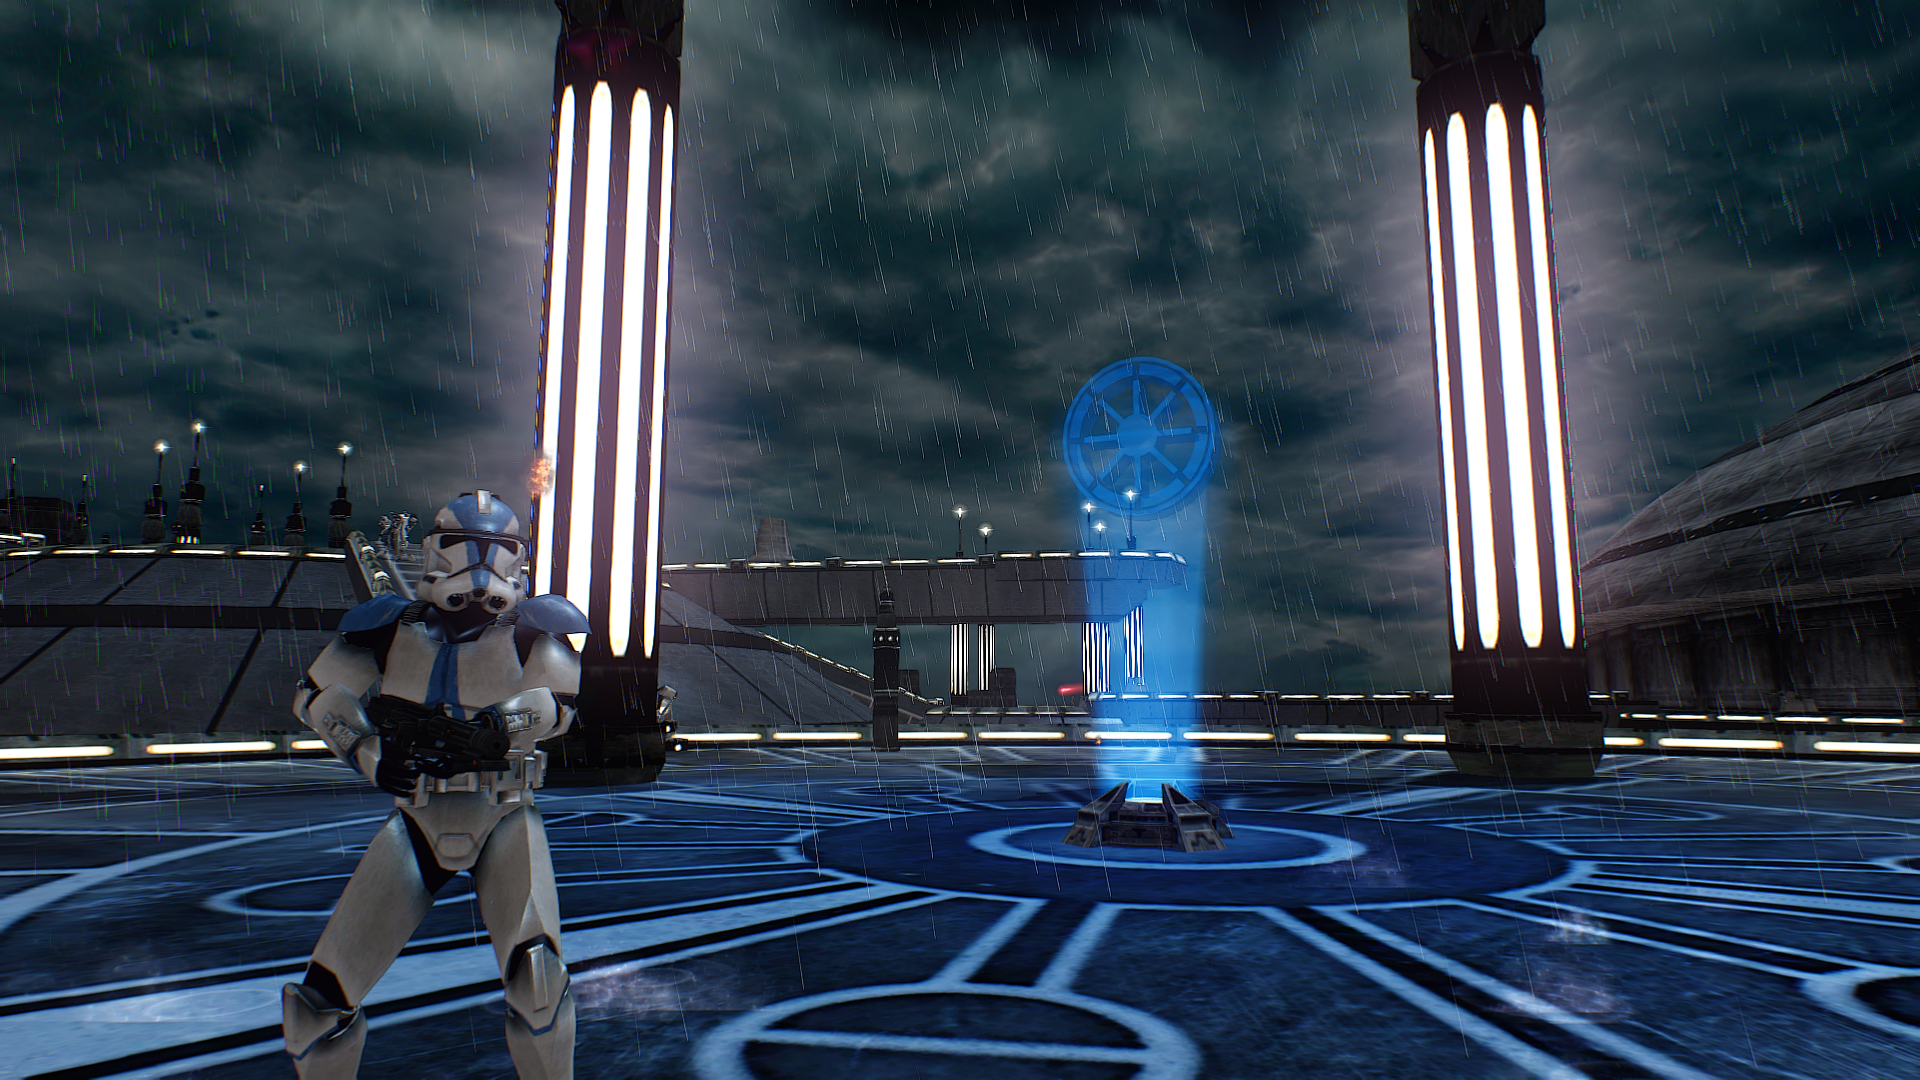 Battlefront 2 remaster project by harrisonfog at star wars this is how the game looks using my graphics mod my hd remastered maps publicscrutiny Image collections